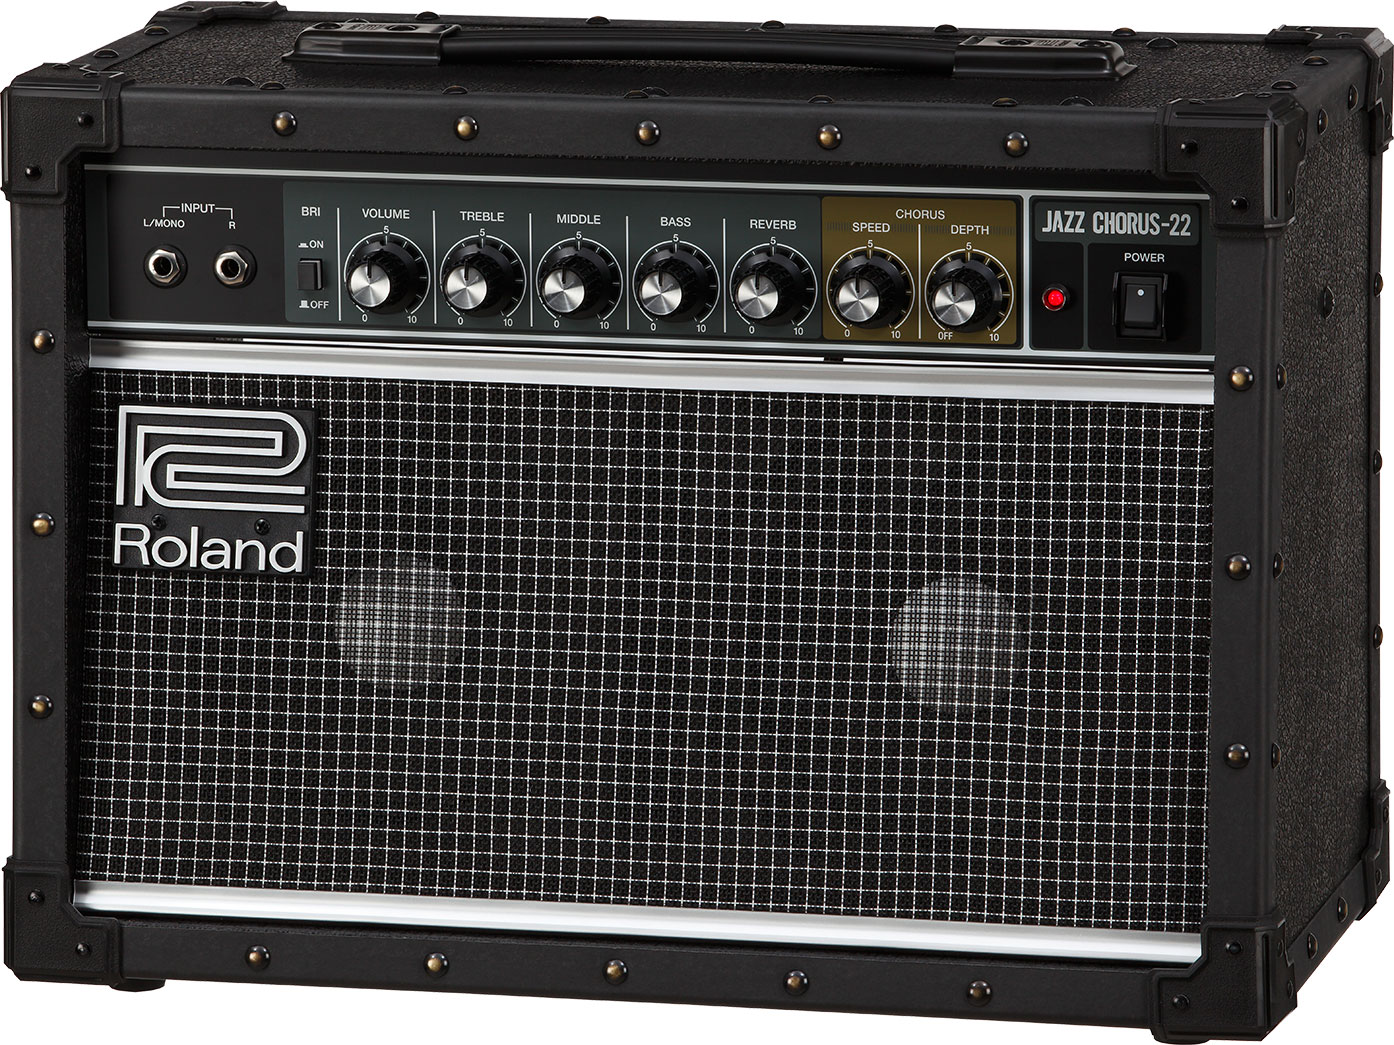 Roland Jc 22 Jazz Chorus Guitar Amplifier